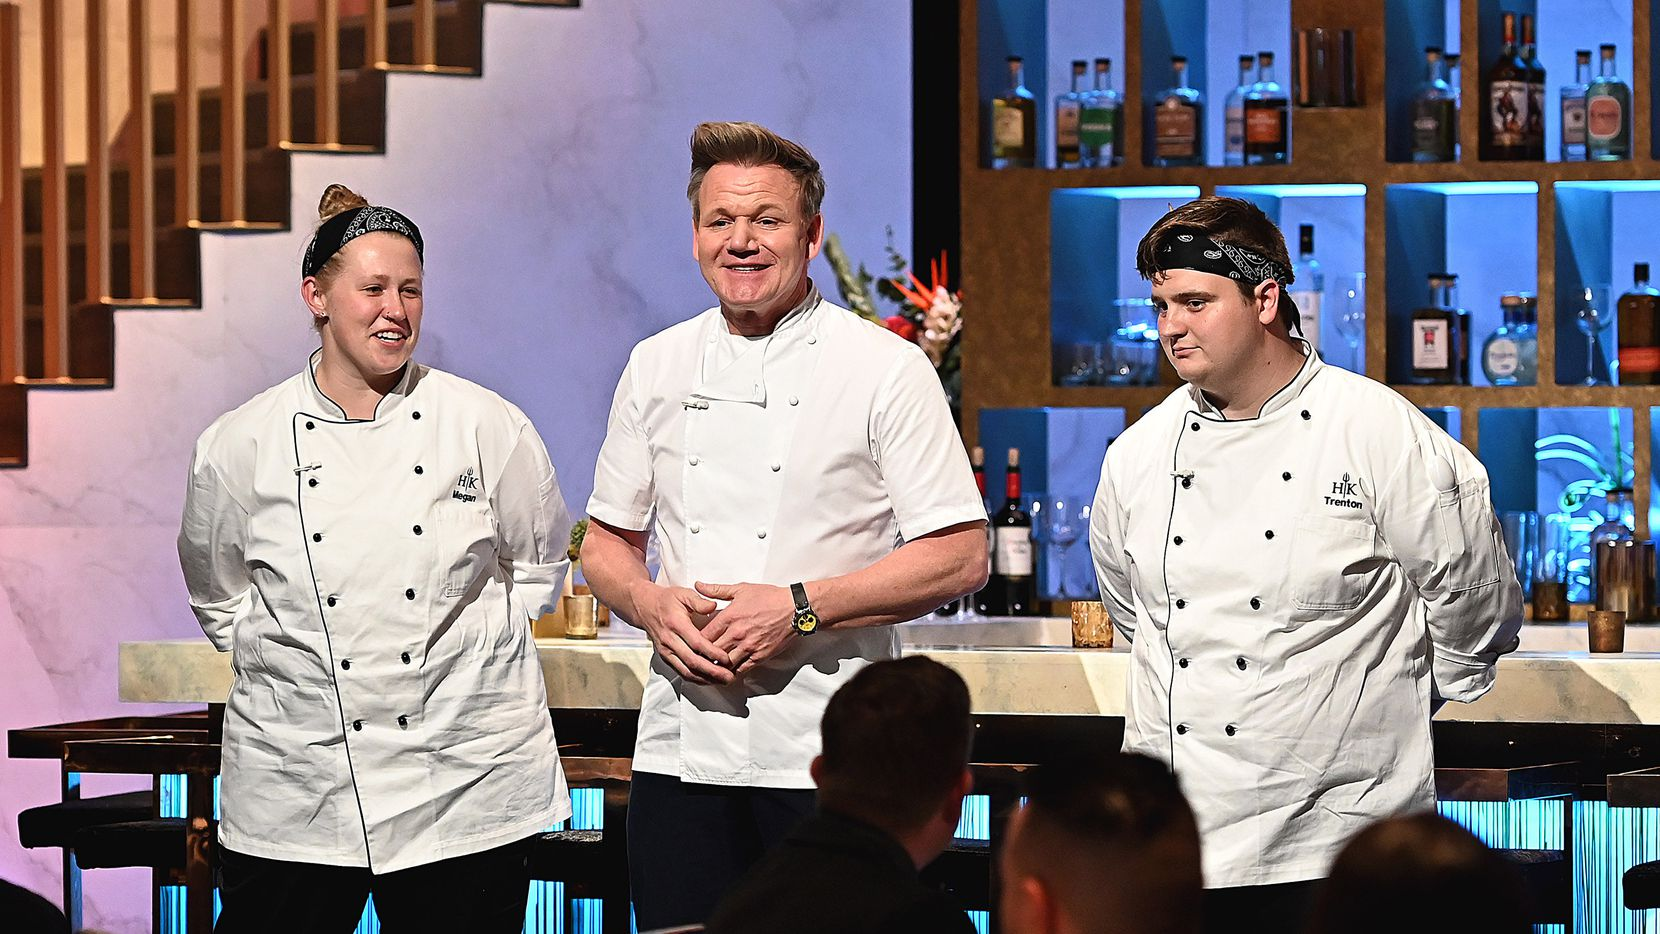 'Hell's Kitchen' contestant Megan Gill, on left, joined chef/host Gordon Ramsay and contestant Trenton Garvey in the season finale.